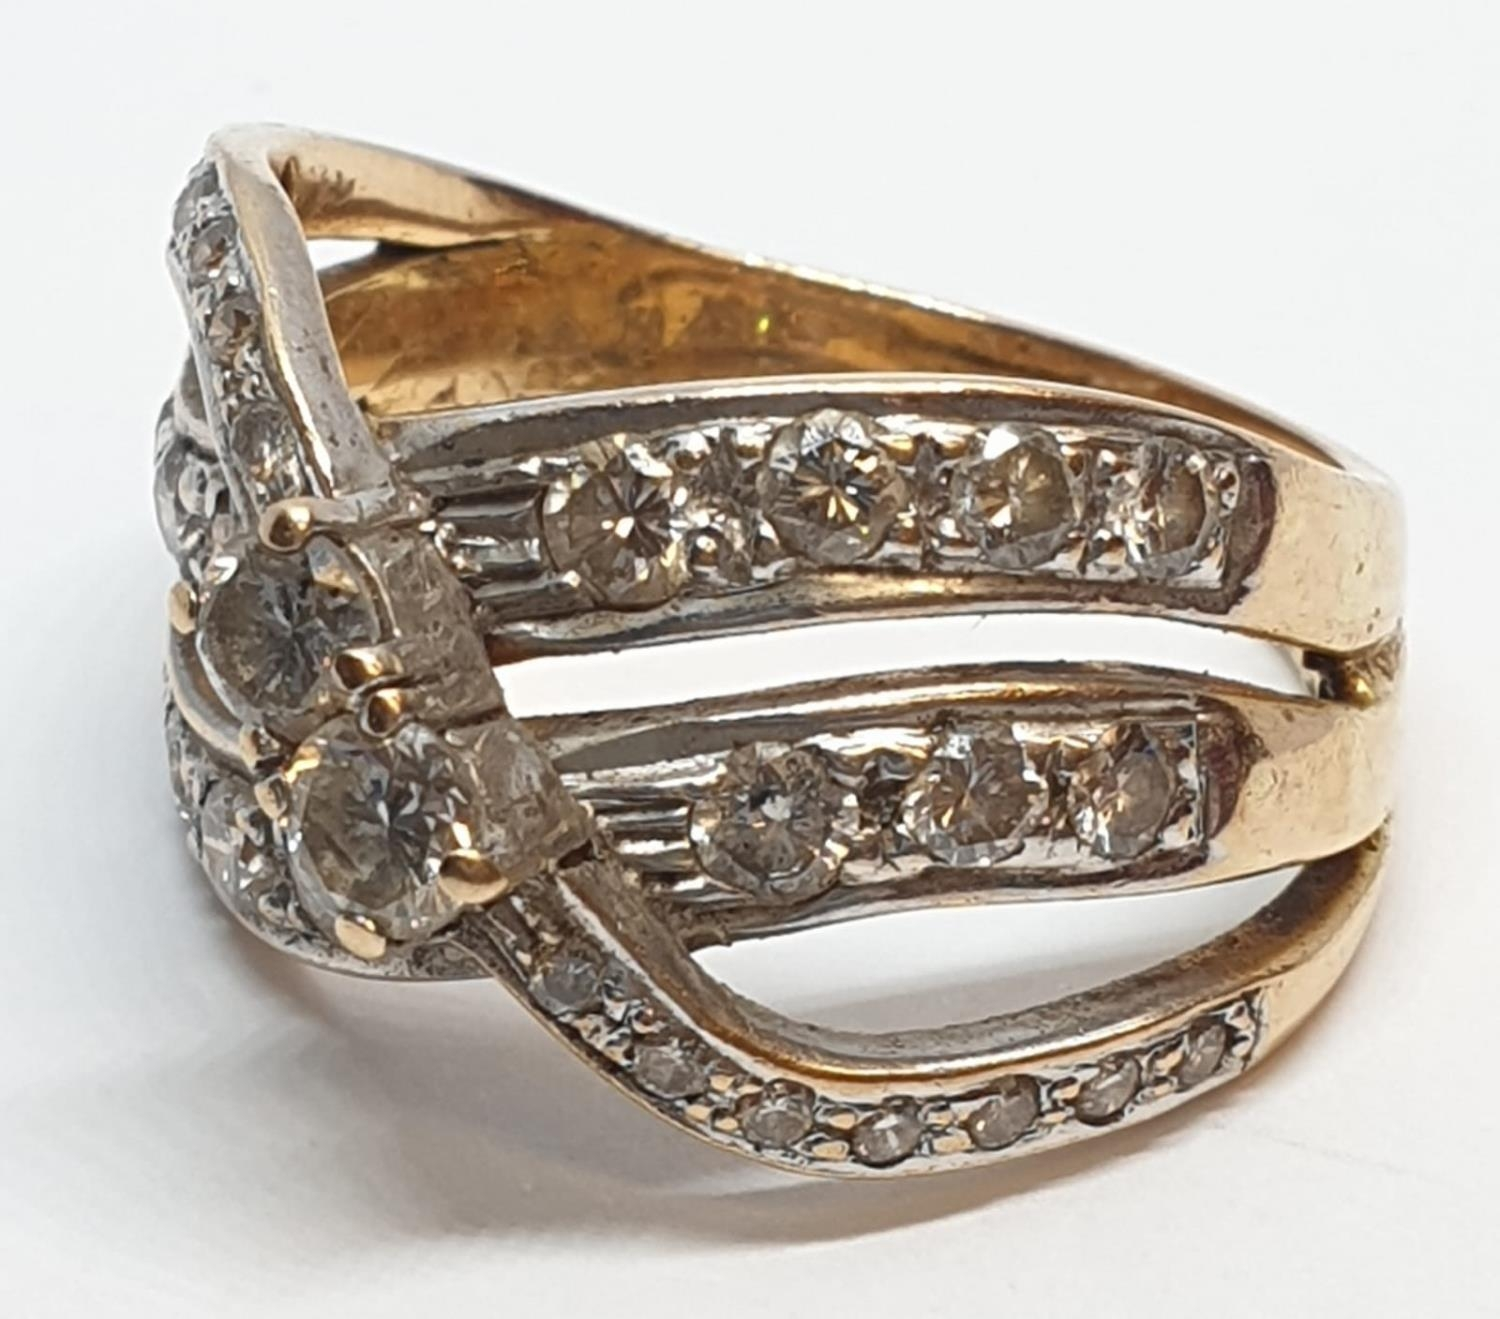 18ct Yellow gold diamond set fancy three row twist band ring. Weight 8.5g, Approx. 0.60ct of - Image 4 of 14